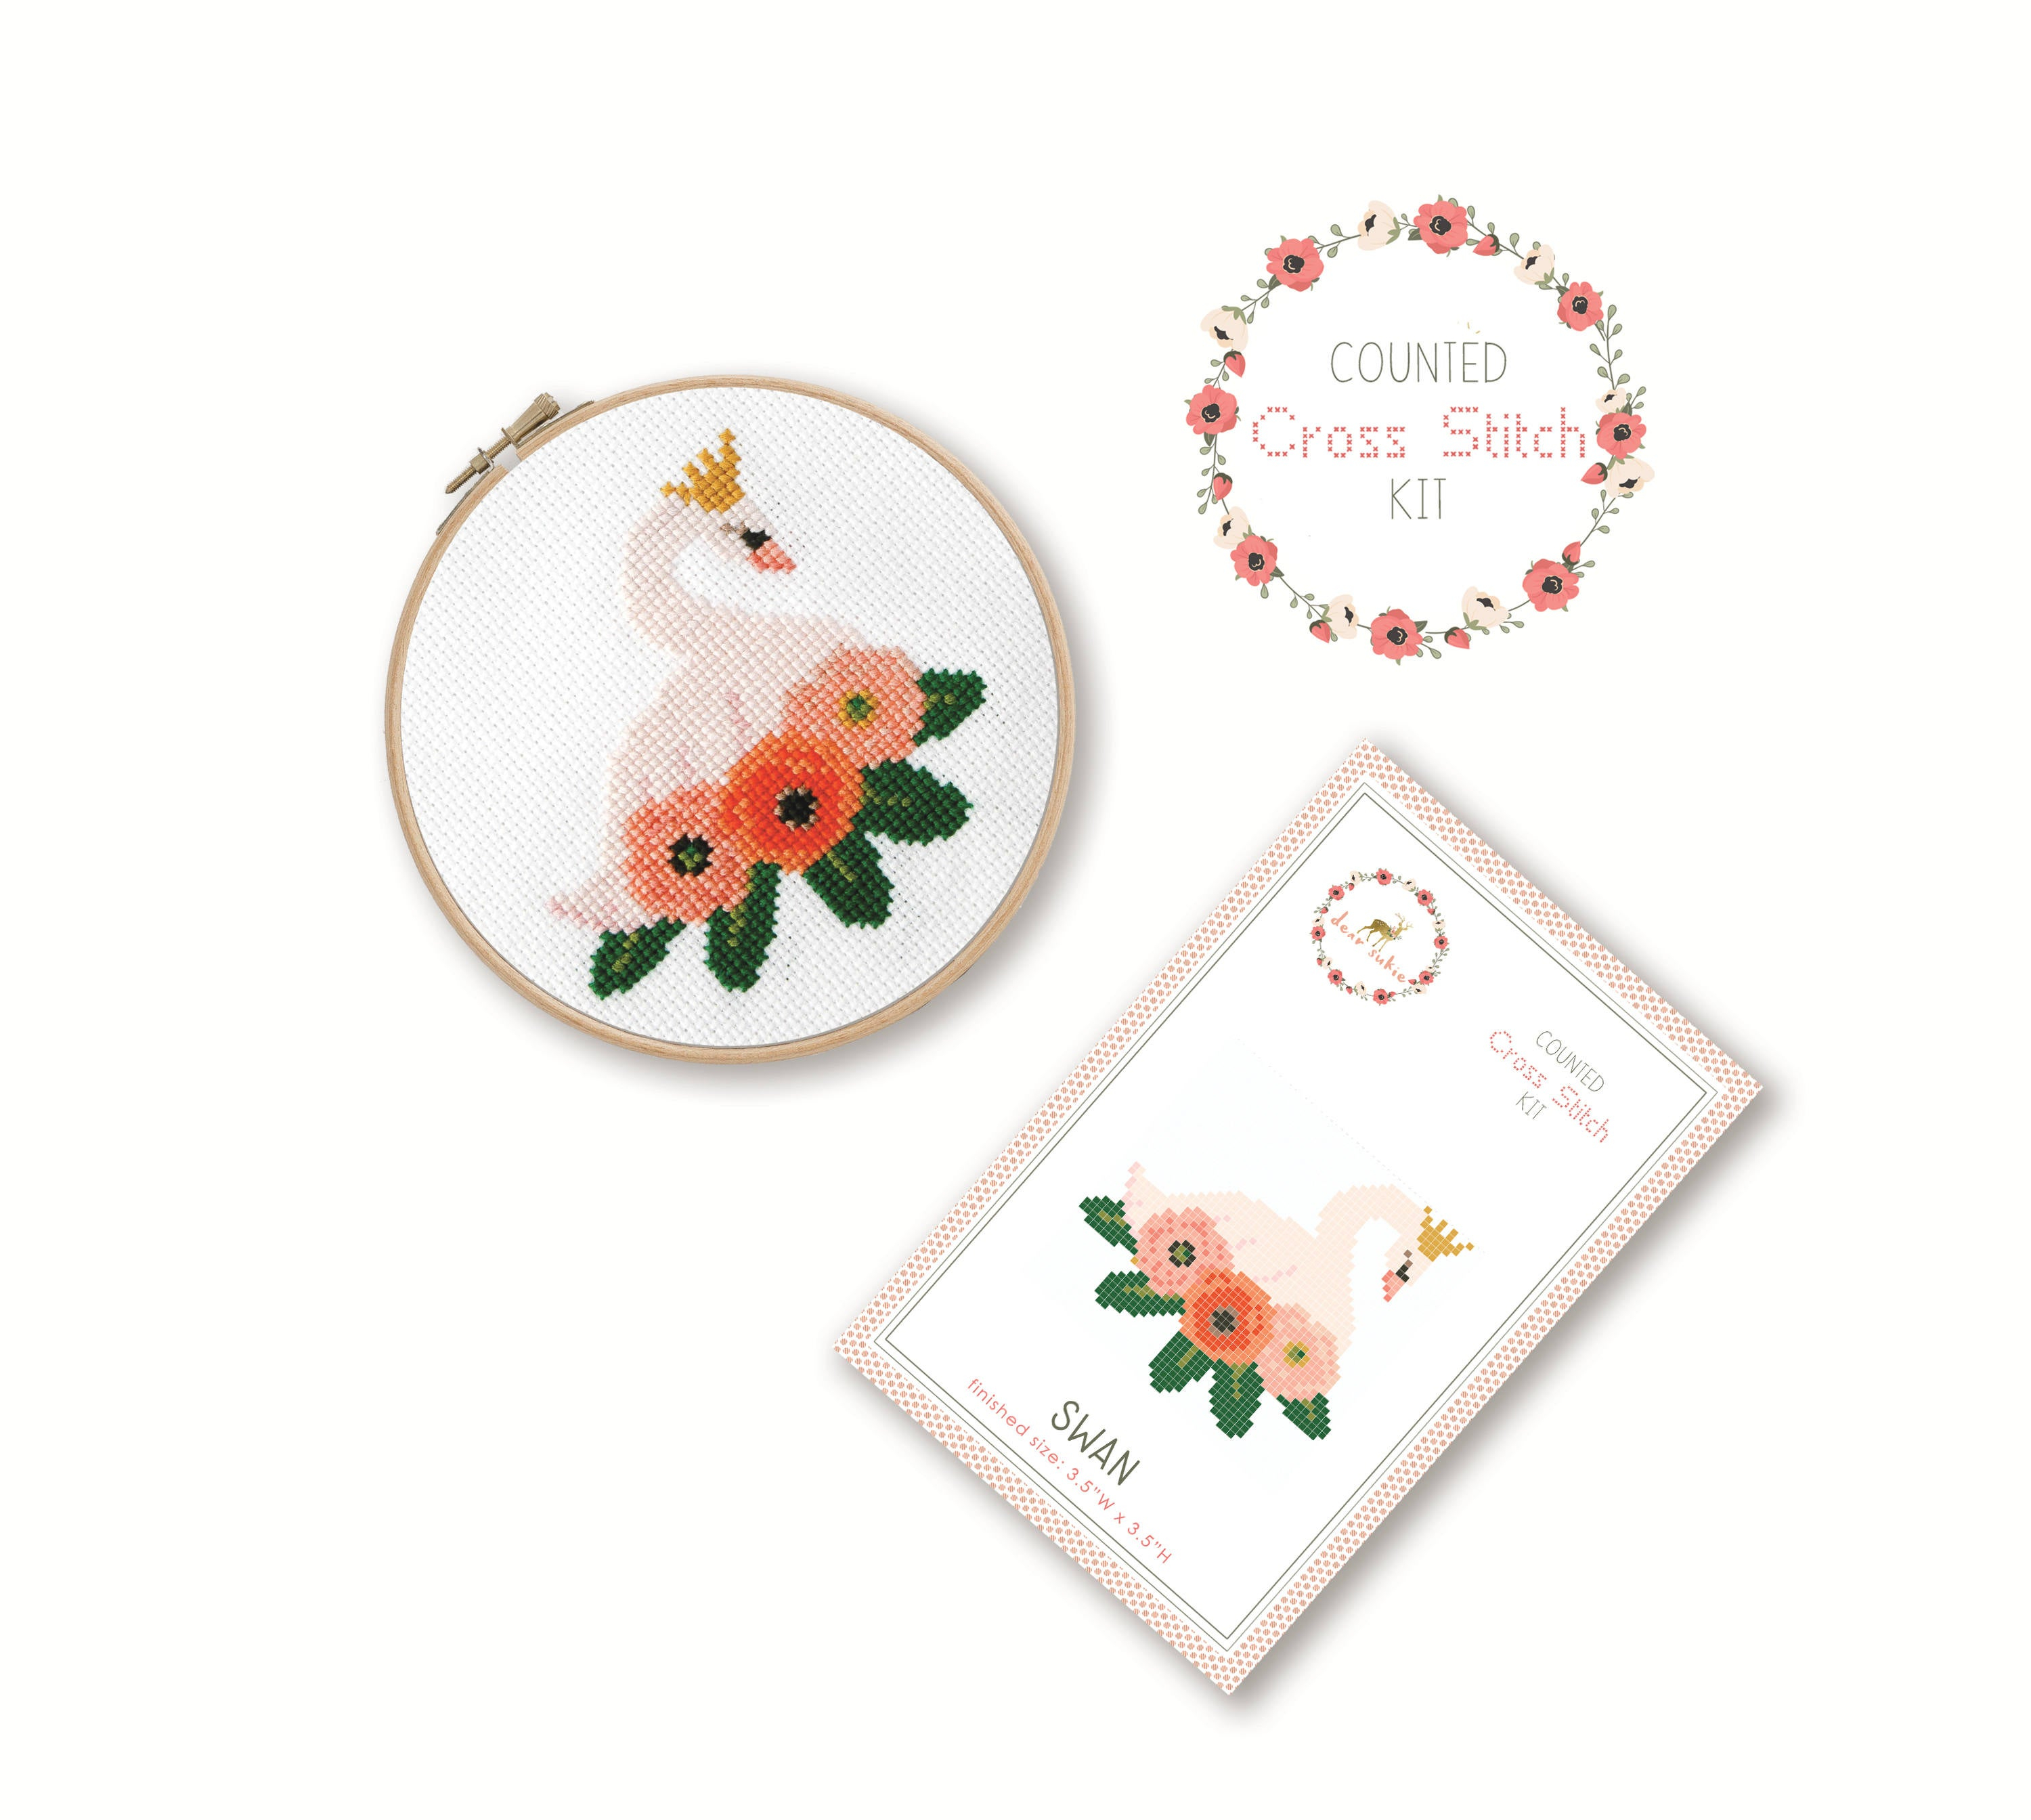 Embroidery Bird Patterns Counted Cross Stitch Kit Swan Bird Cross Stitch Pattern Craft